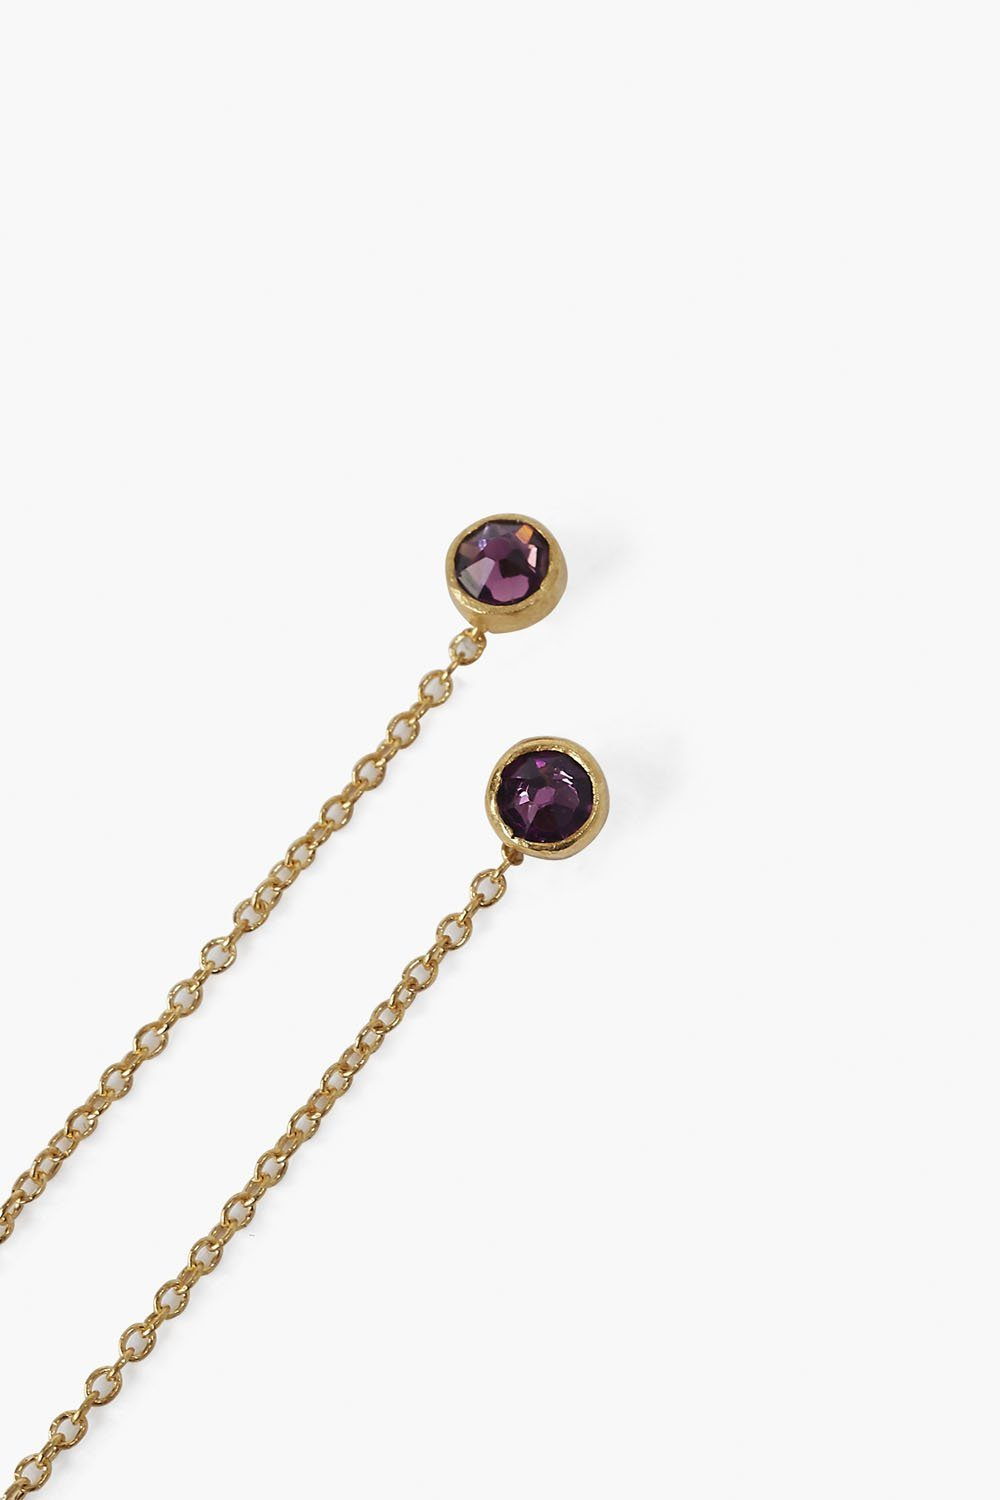 February Amethyst Birthstone Thread Thru Earrings